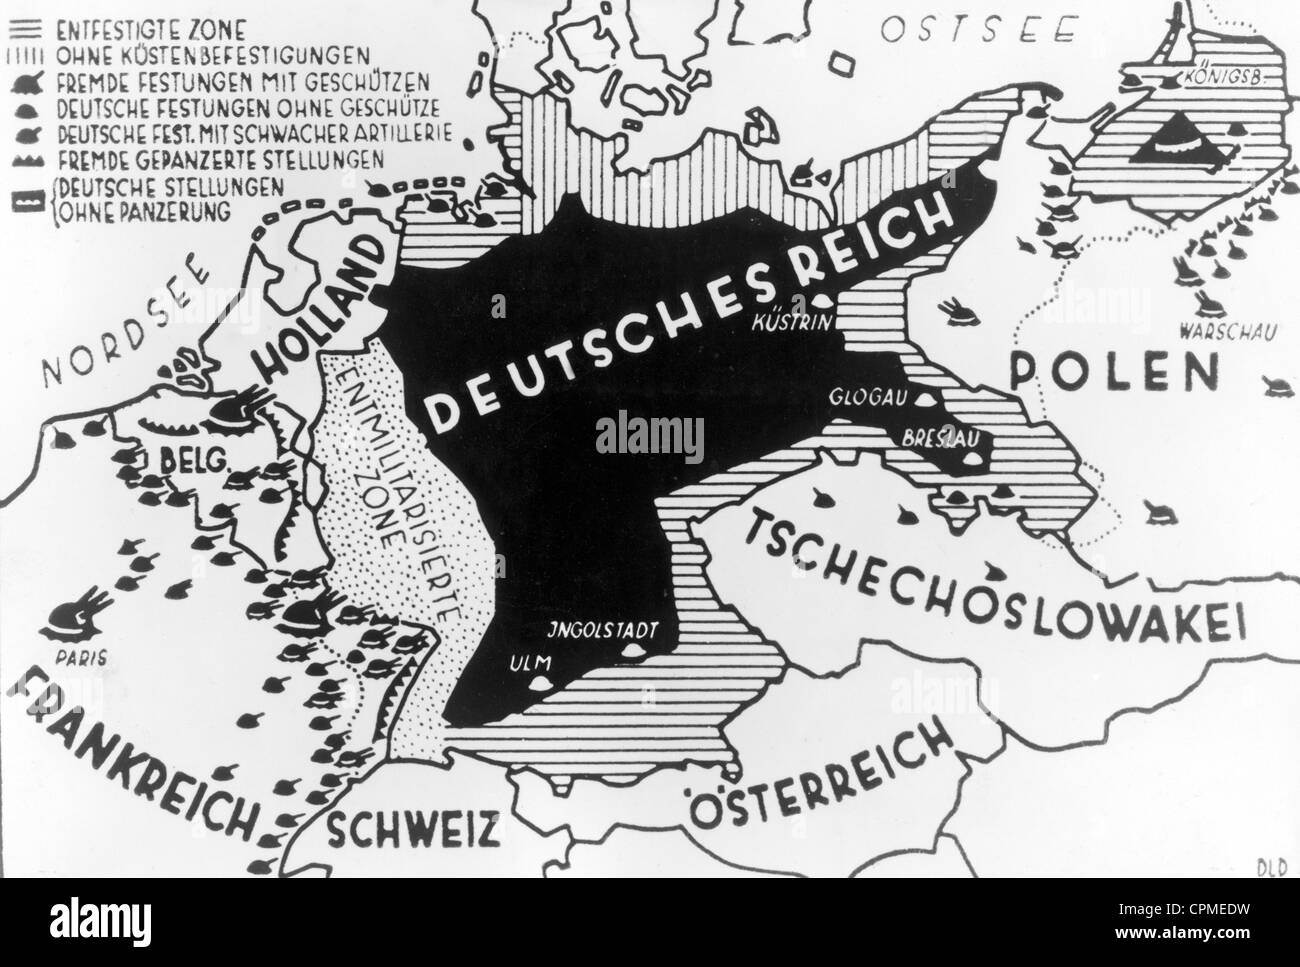 Presentation of Germany's military situation after the First World War, 1920's - Stock Image